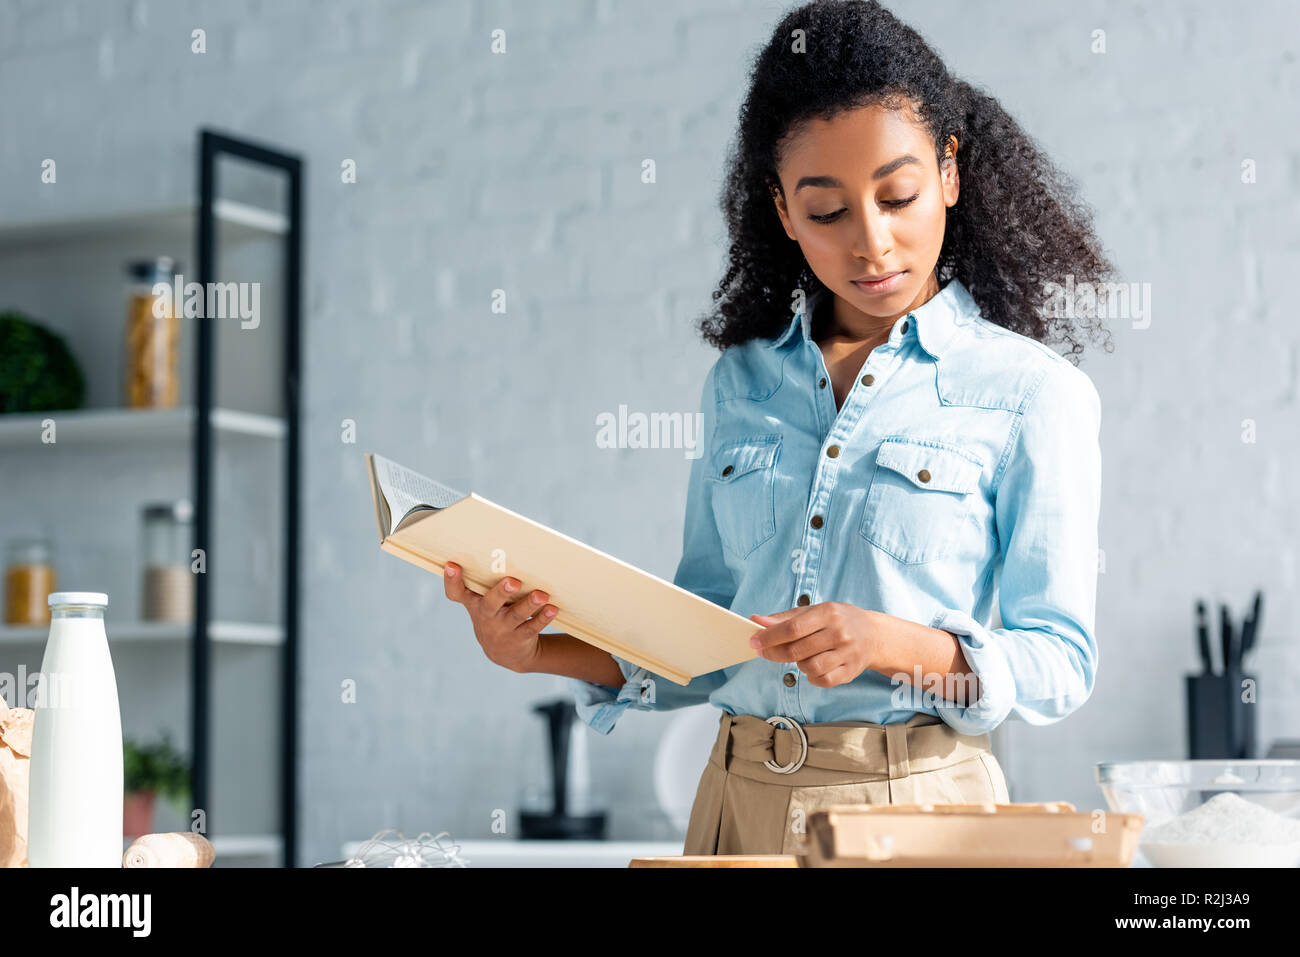 Attractive african american girl holding cookbook in kitchen Photo Stock